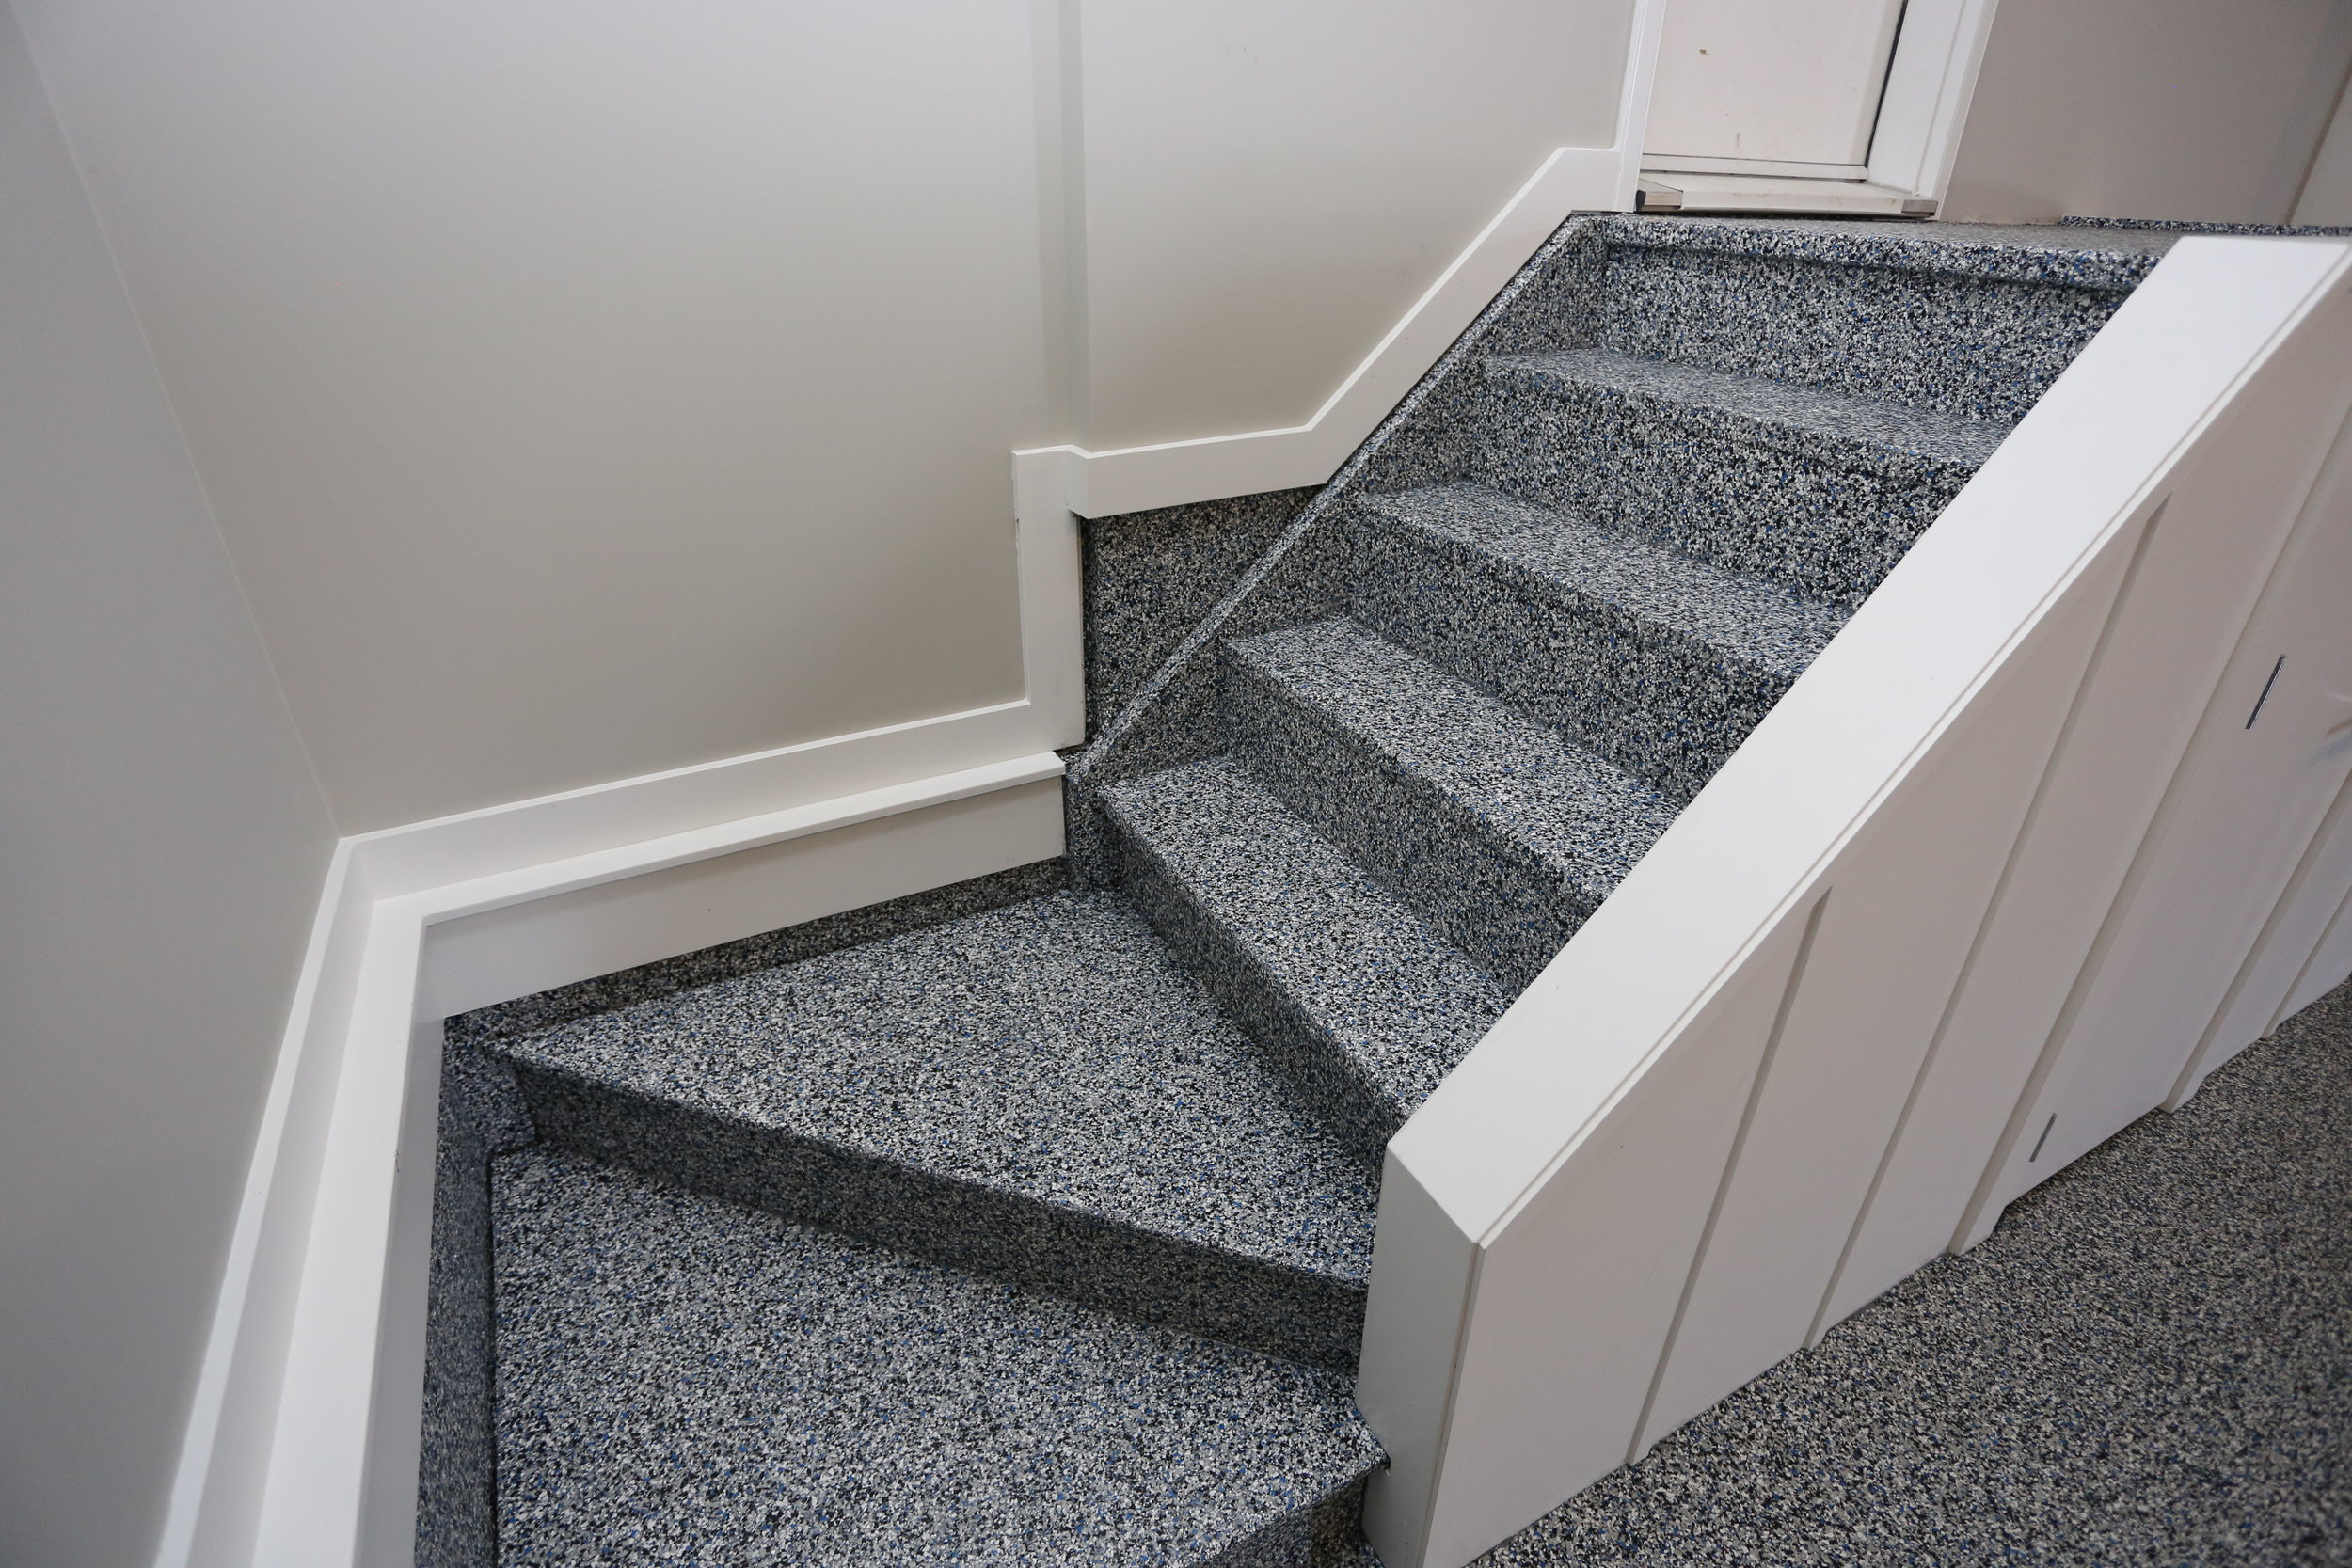 Garage Stairs Coating - We can coat wood stairs with our Polyaspartic Coating to match the Garage Floor.